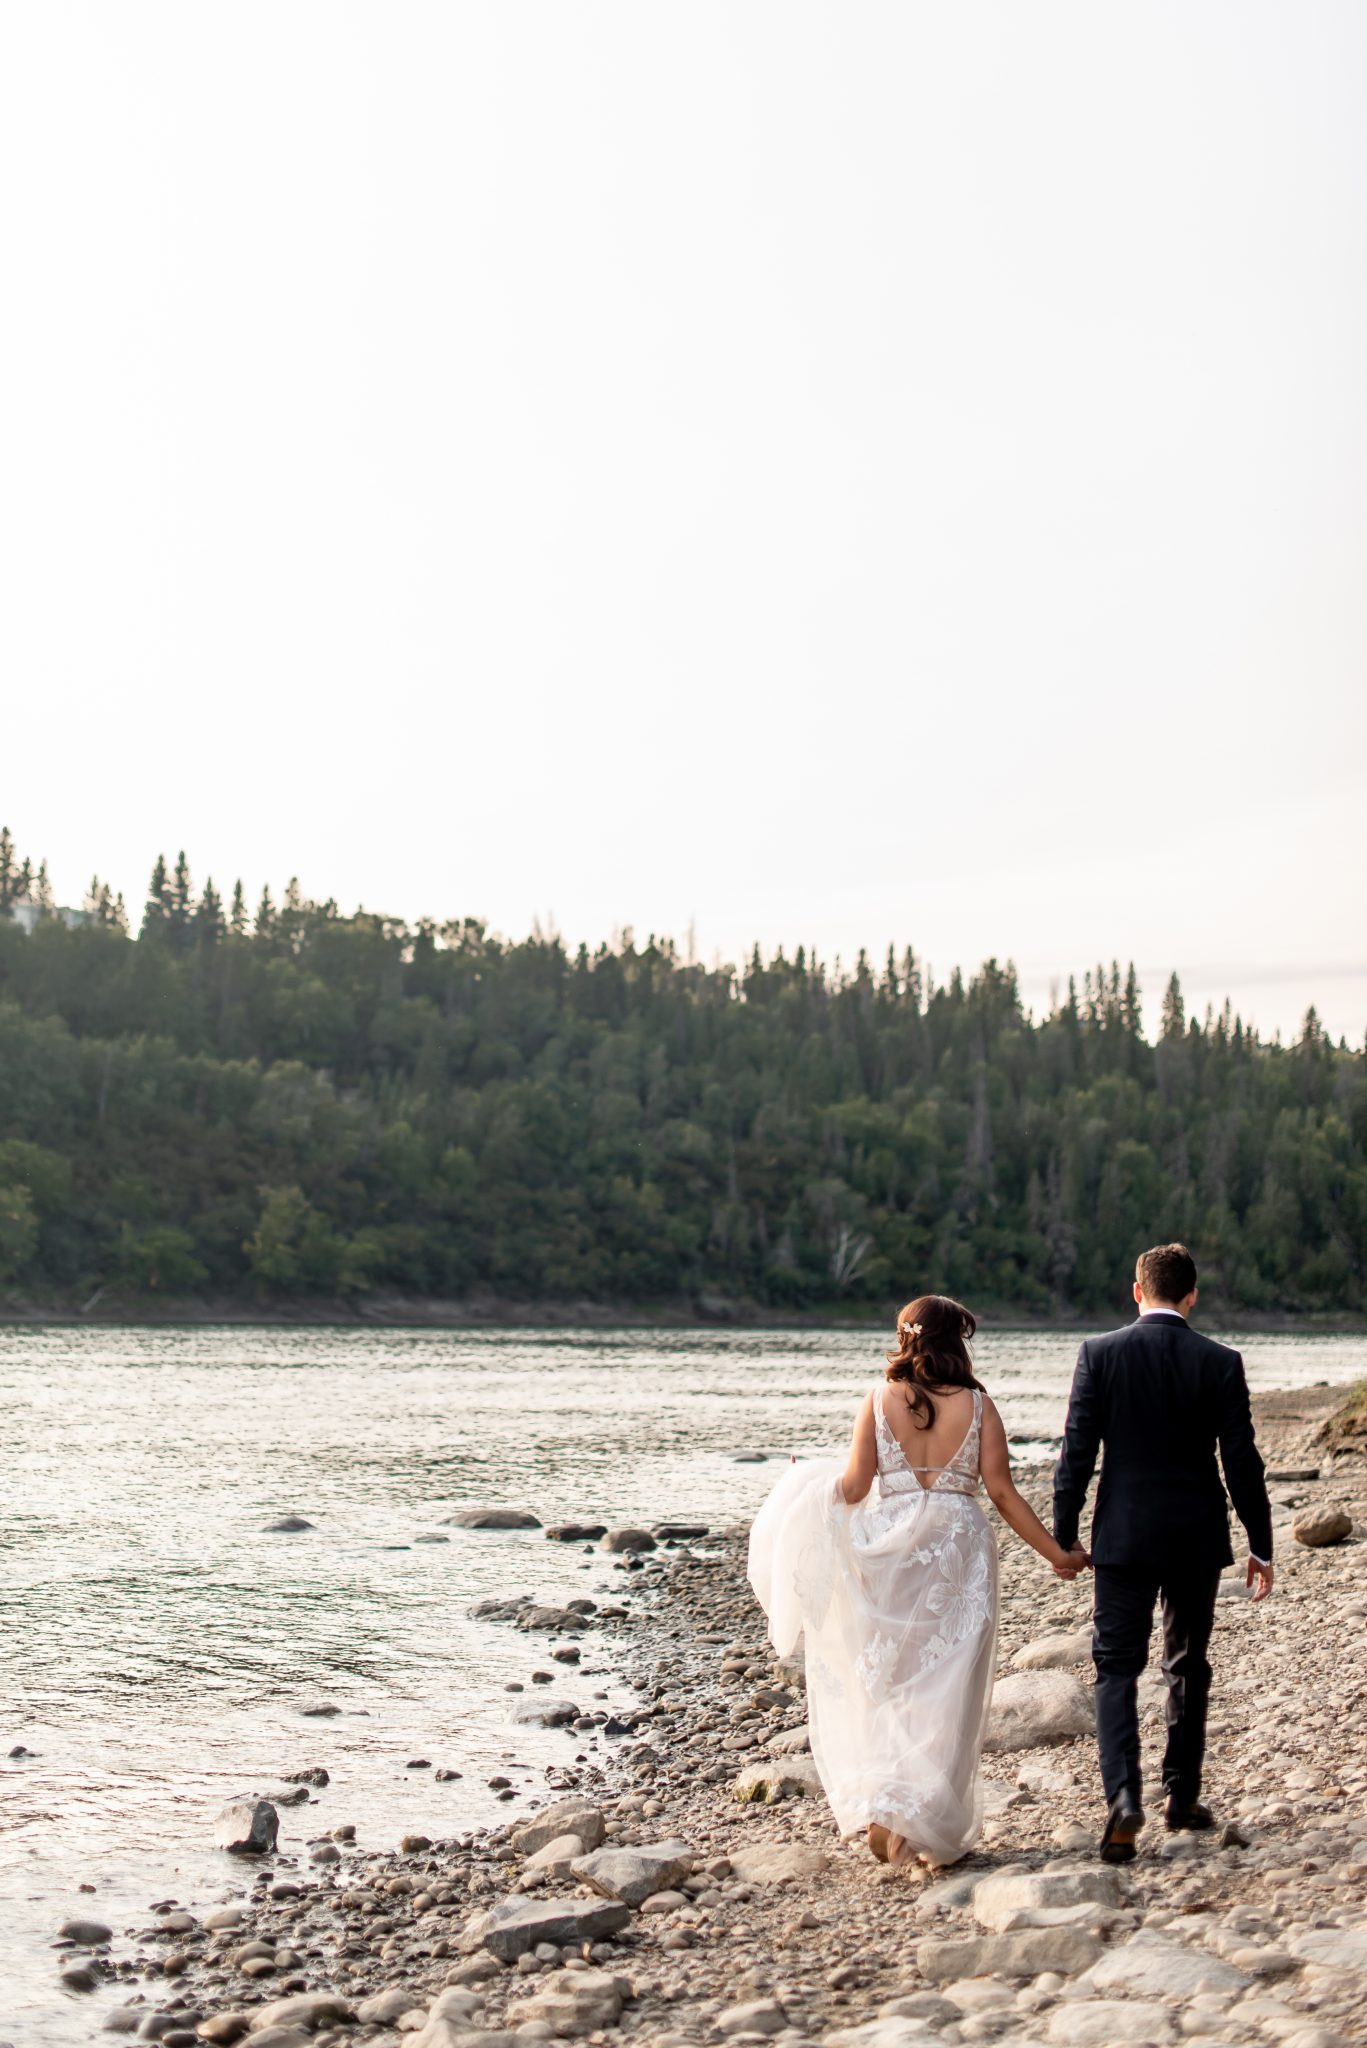 Edmonton Alberta elopement in the river valley